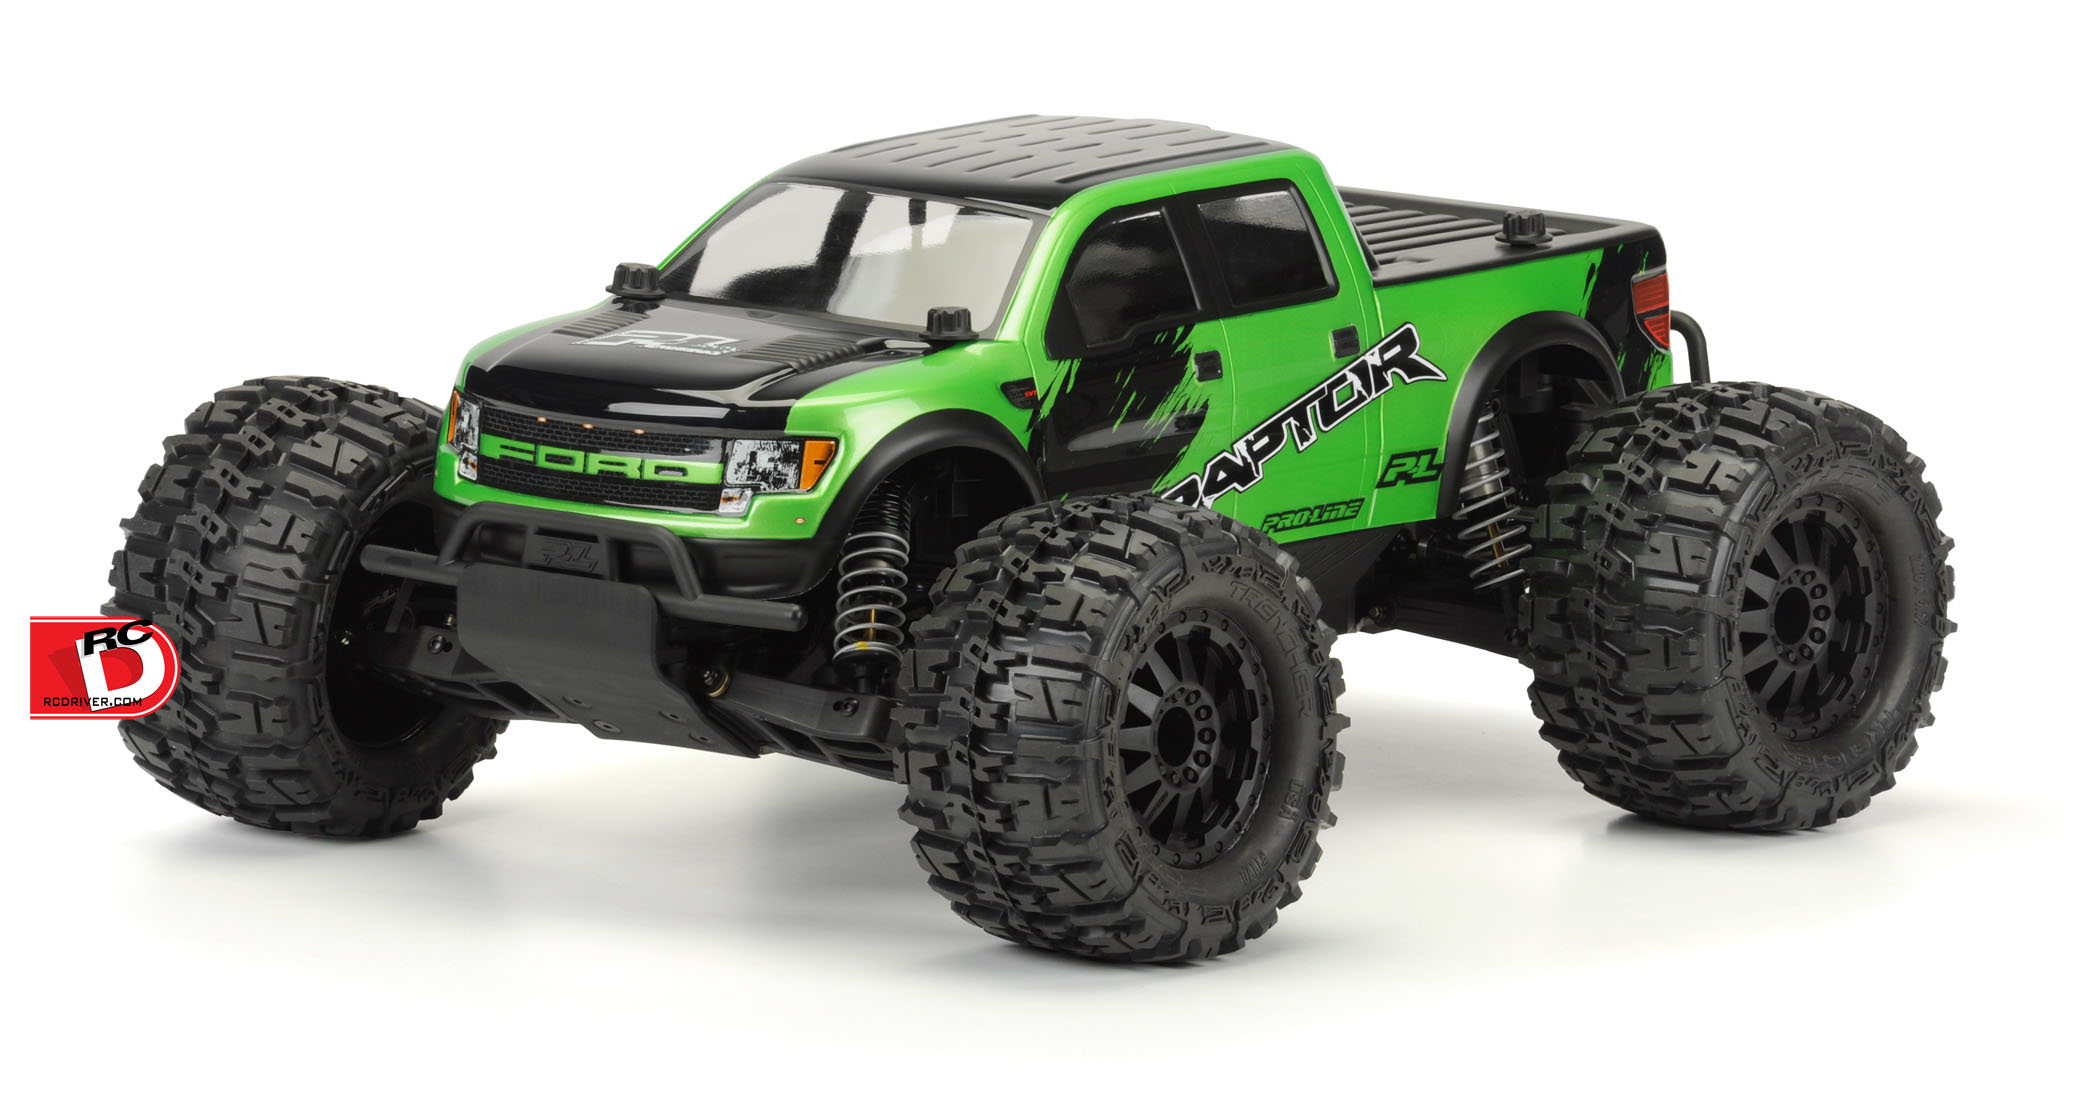 Chevy Silverado and Ford F-150 SVT Raptor Clear Bodies for the Pro-MT